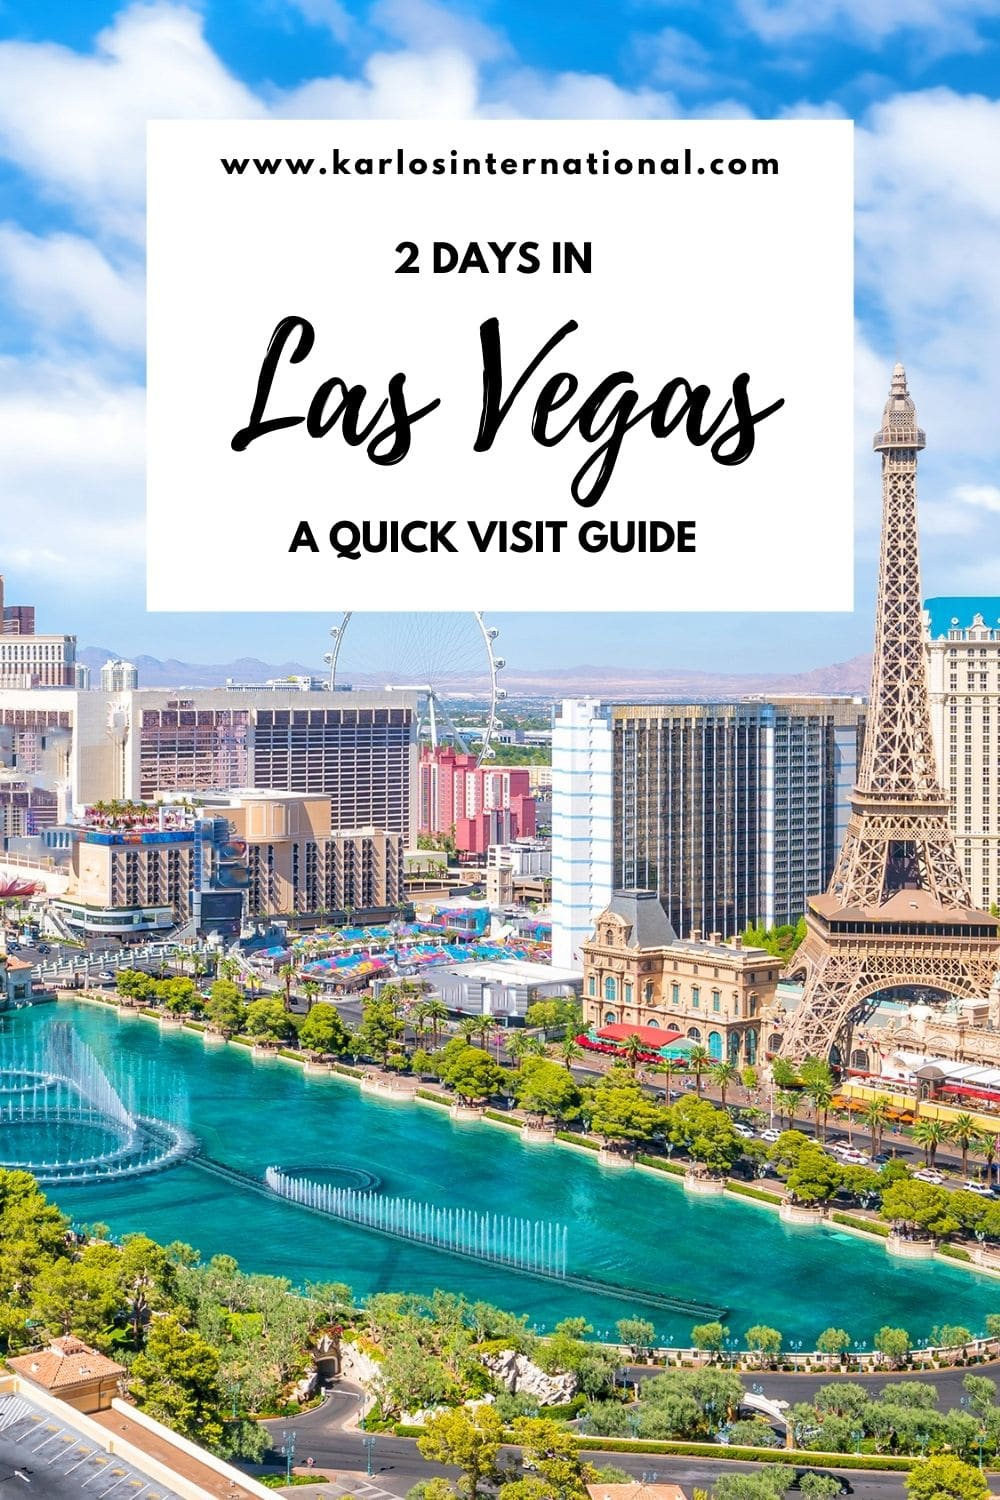 2 days in Las Vegas - A Quick Visit Guide - Pinterest Pin 2